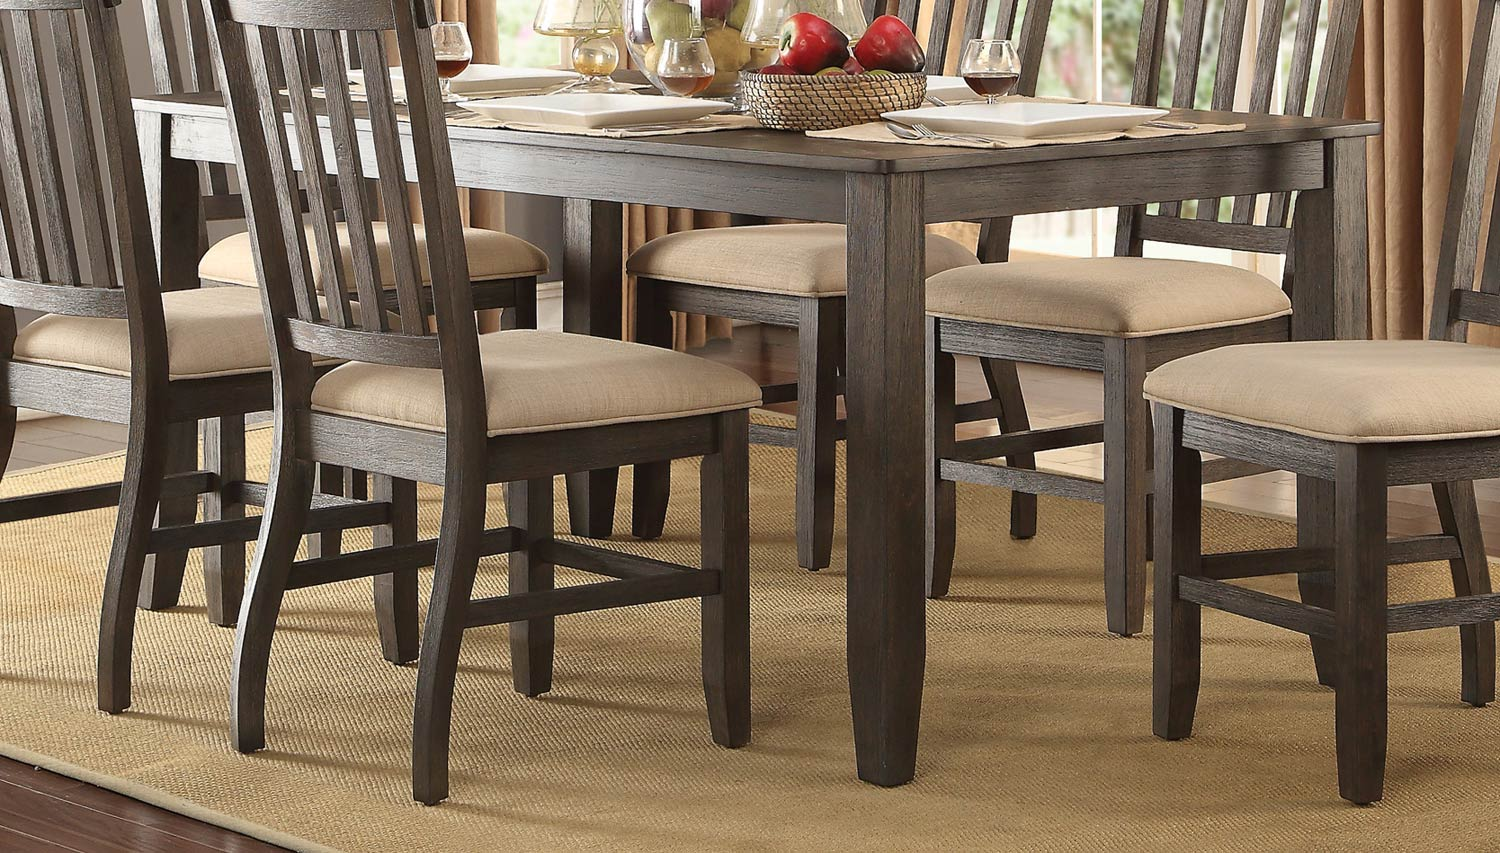 Home Elegance Nantes Dining Table The Cly